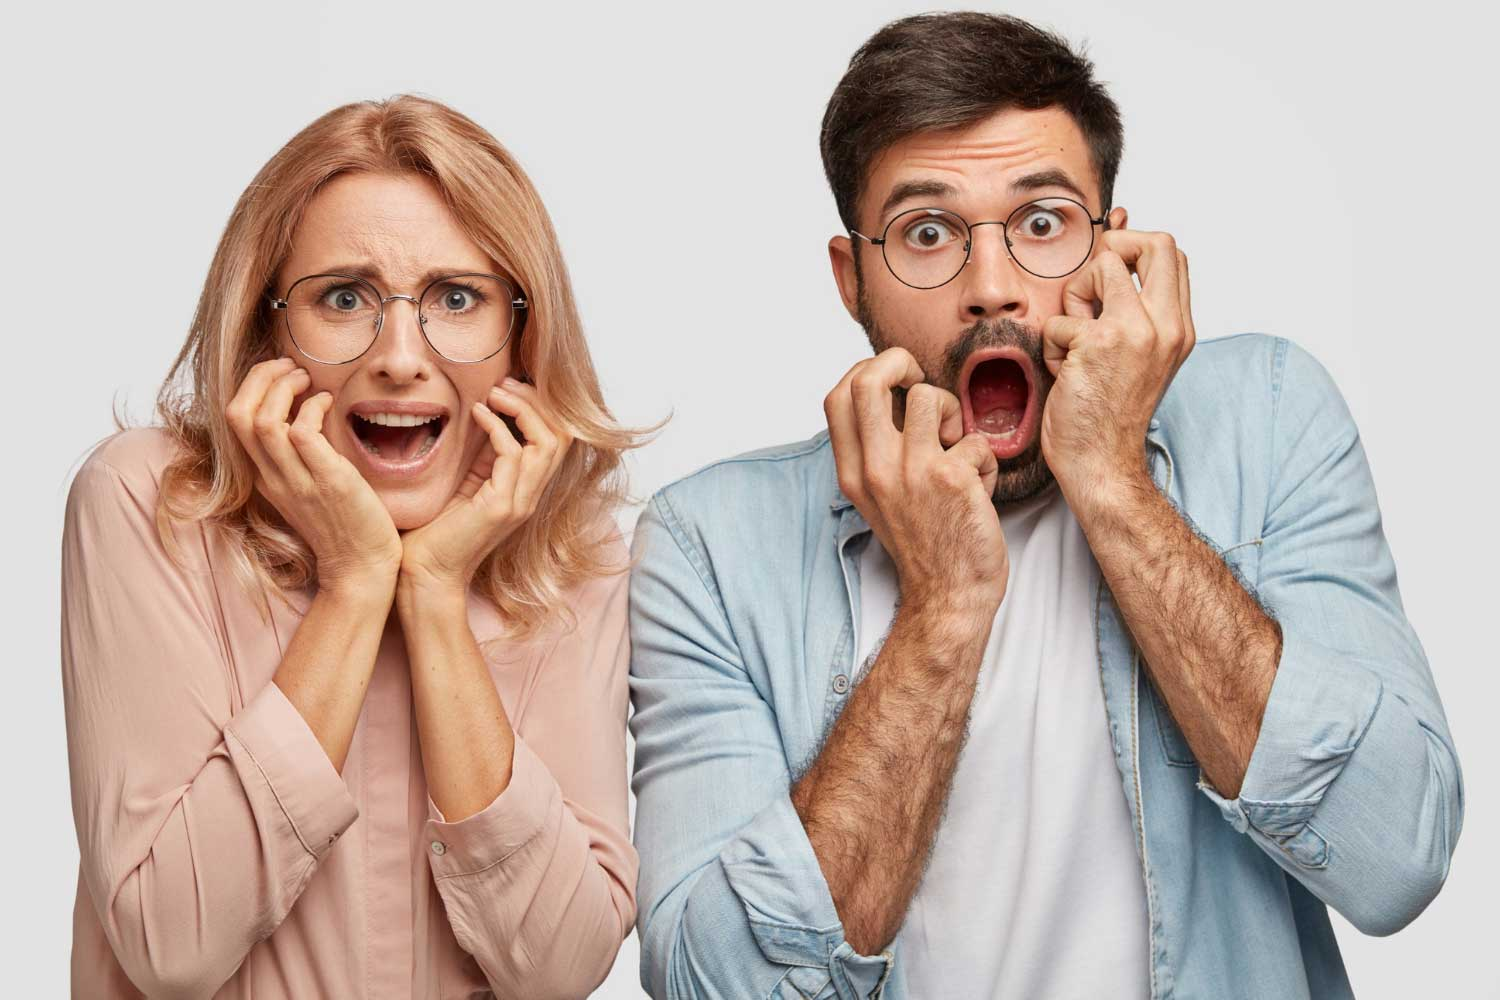 A Man and Woman with Horrified Reaction